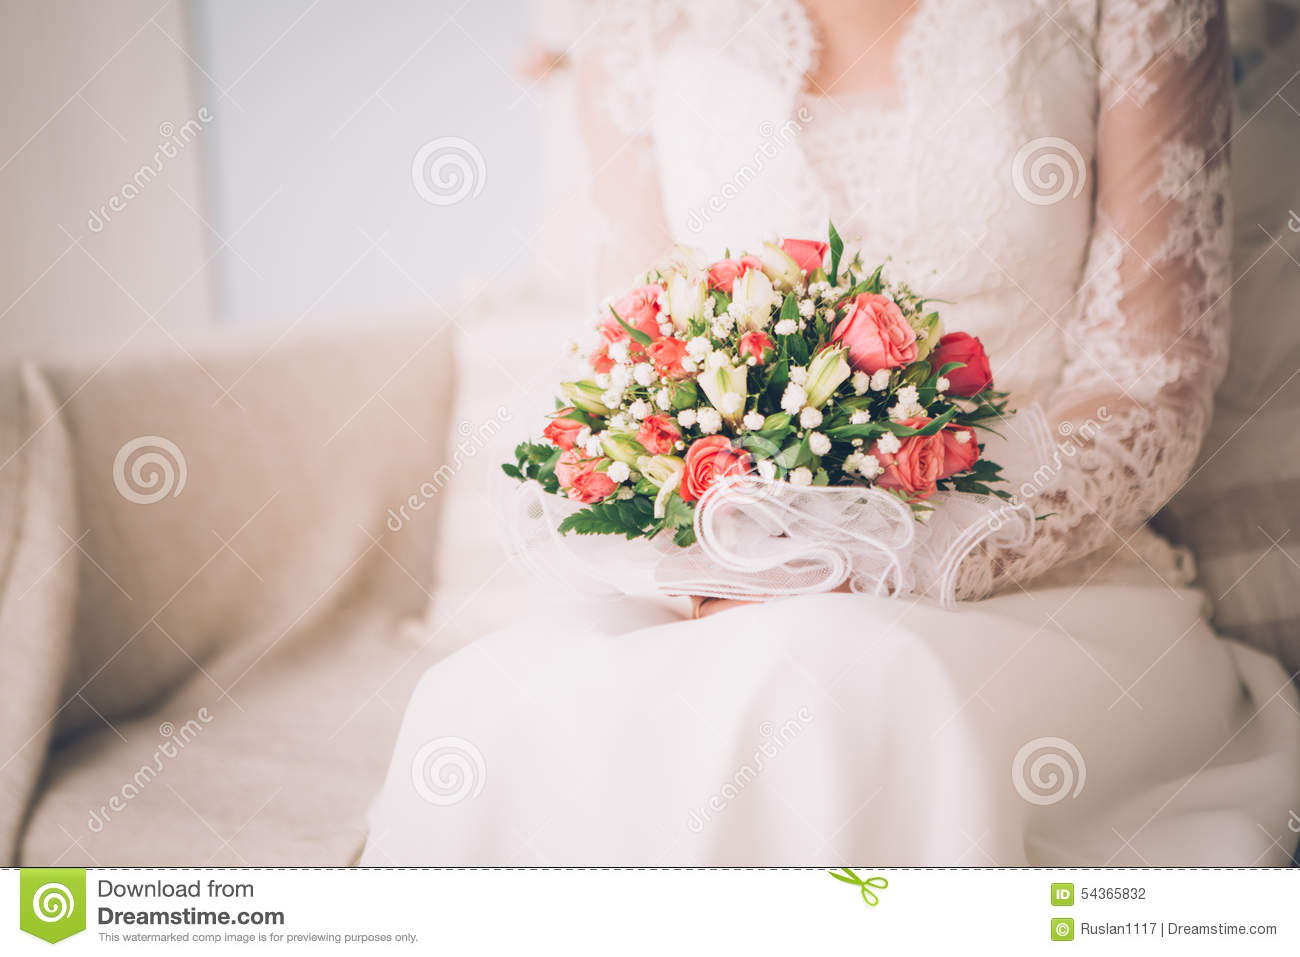 beautiful wedding bouquet in the hands of the bride royalty free stock photo. Black Bedroom Furniture Sets. Home Design Ideas